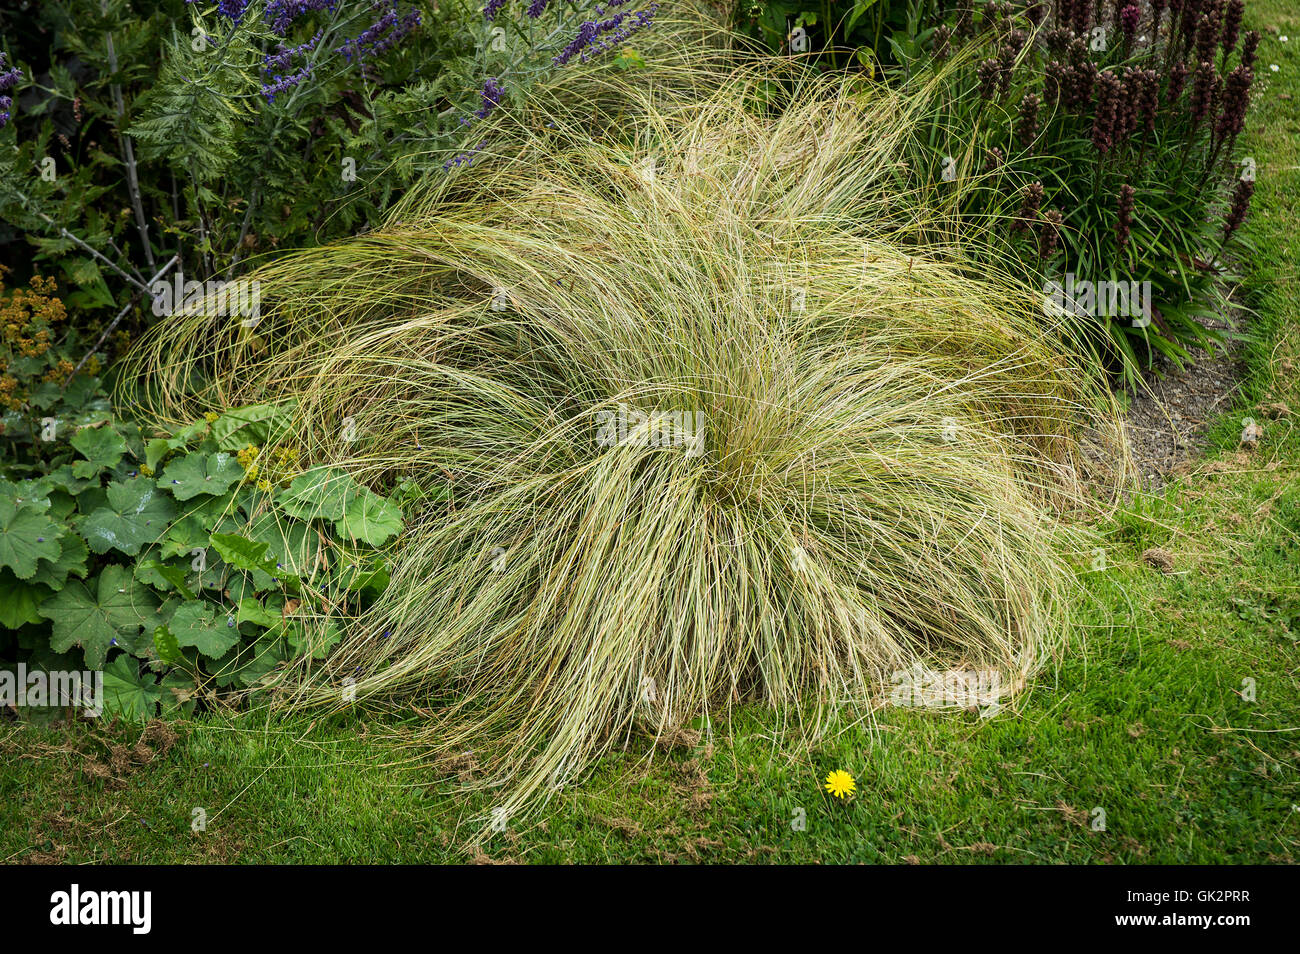 Carex Frosted Curls. - Stock Image